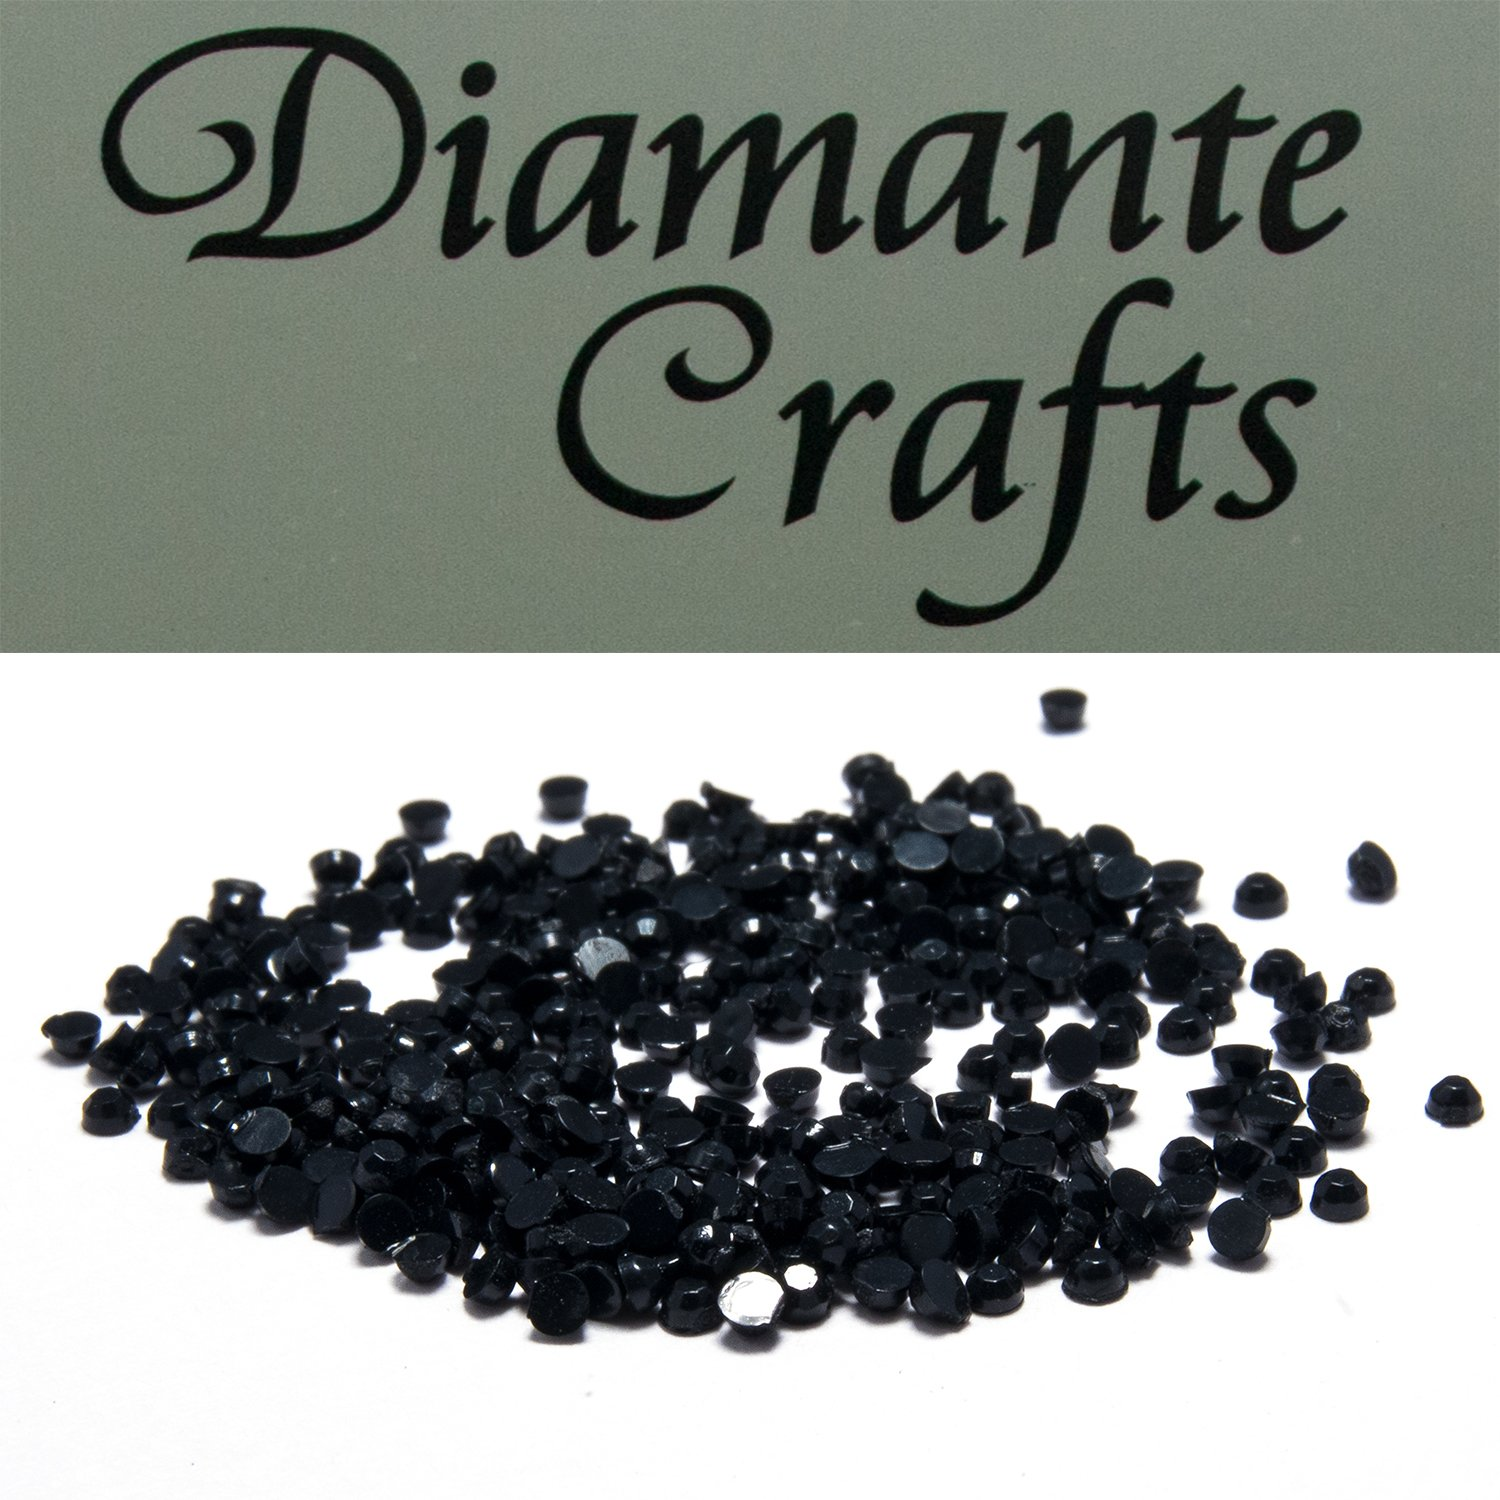 300 x 1mm Black Round Diamante Loose Flat Back Rhinestone Gems - created exclusively for Diamante Crafts